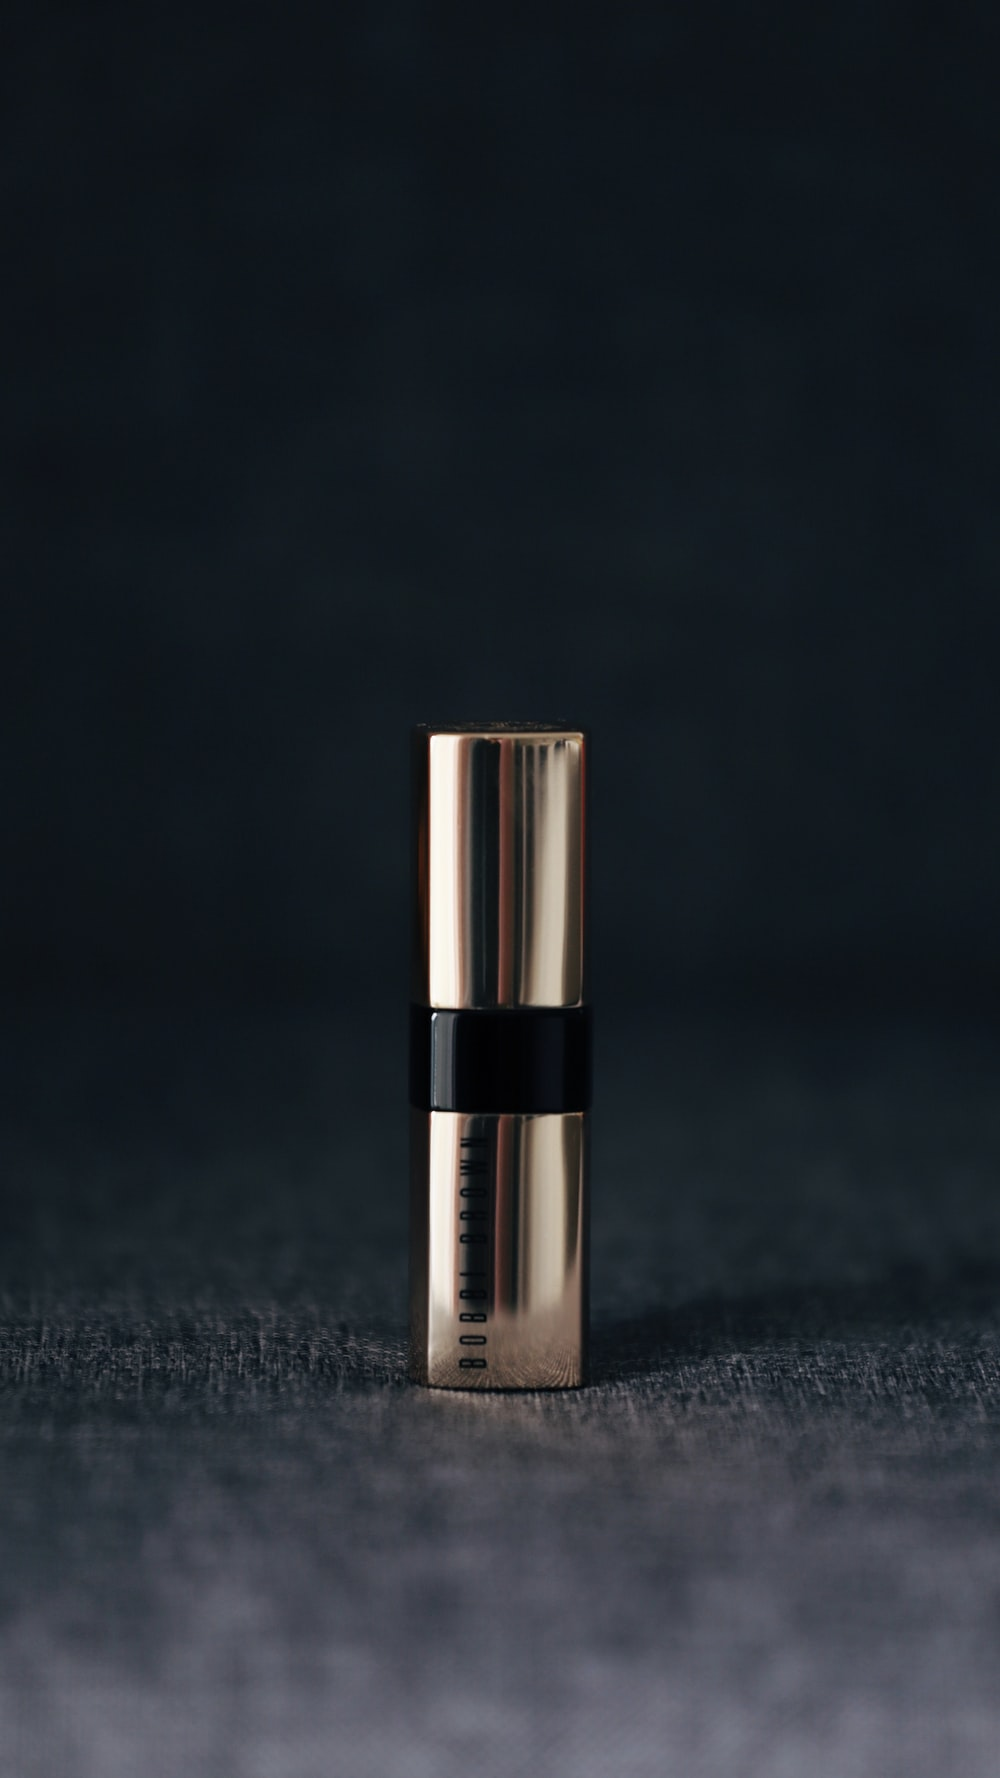 grey lipstick container in selective focus photography